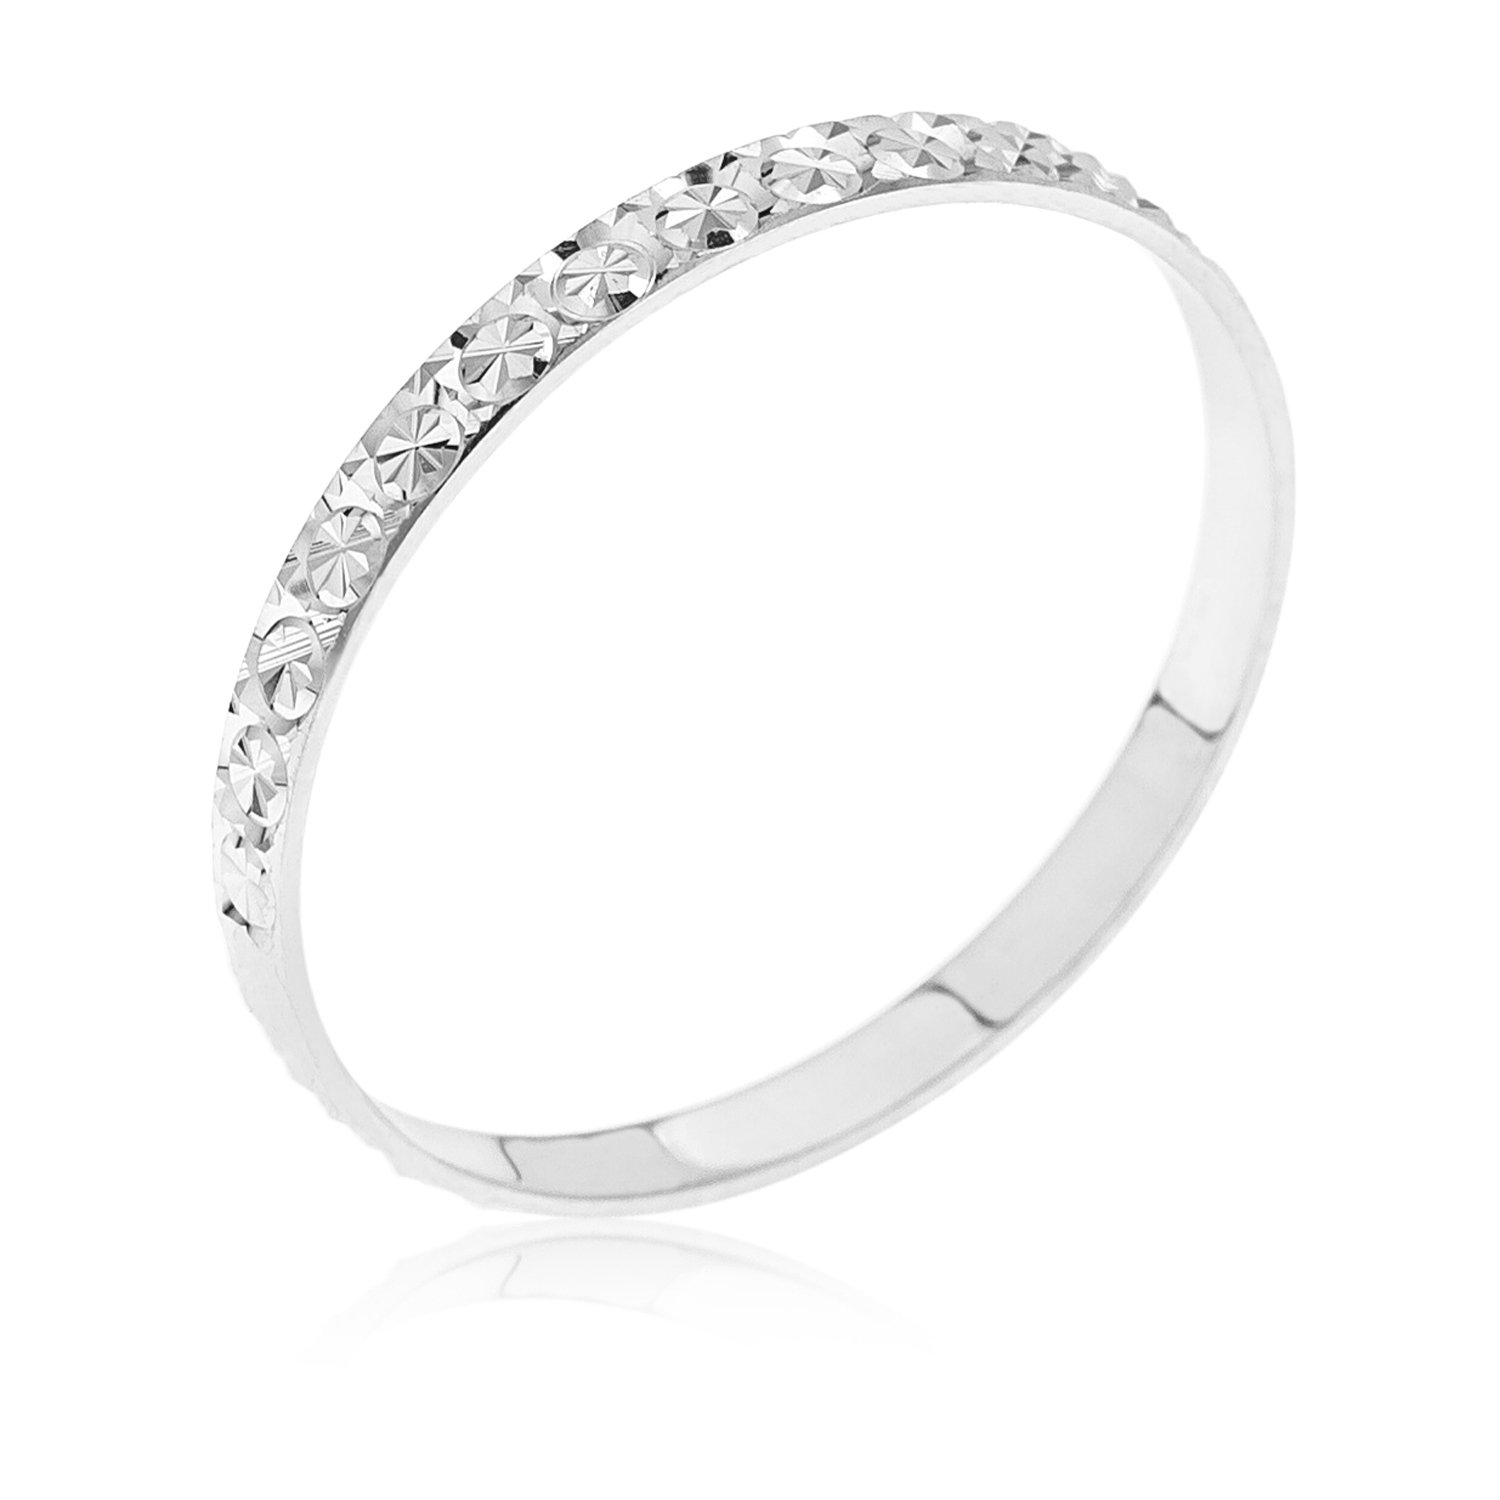 Kareco Wedding Ring 9 Carat White Gold Light Flat Diamond Cut